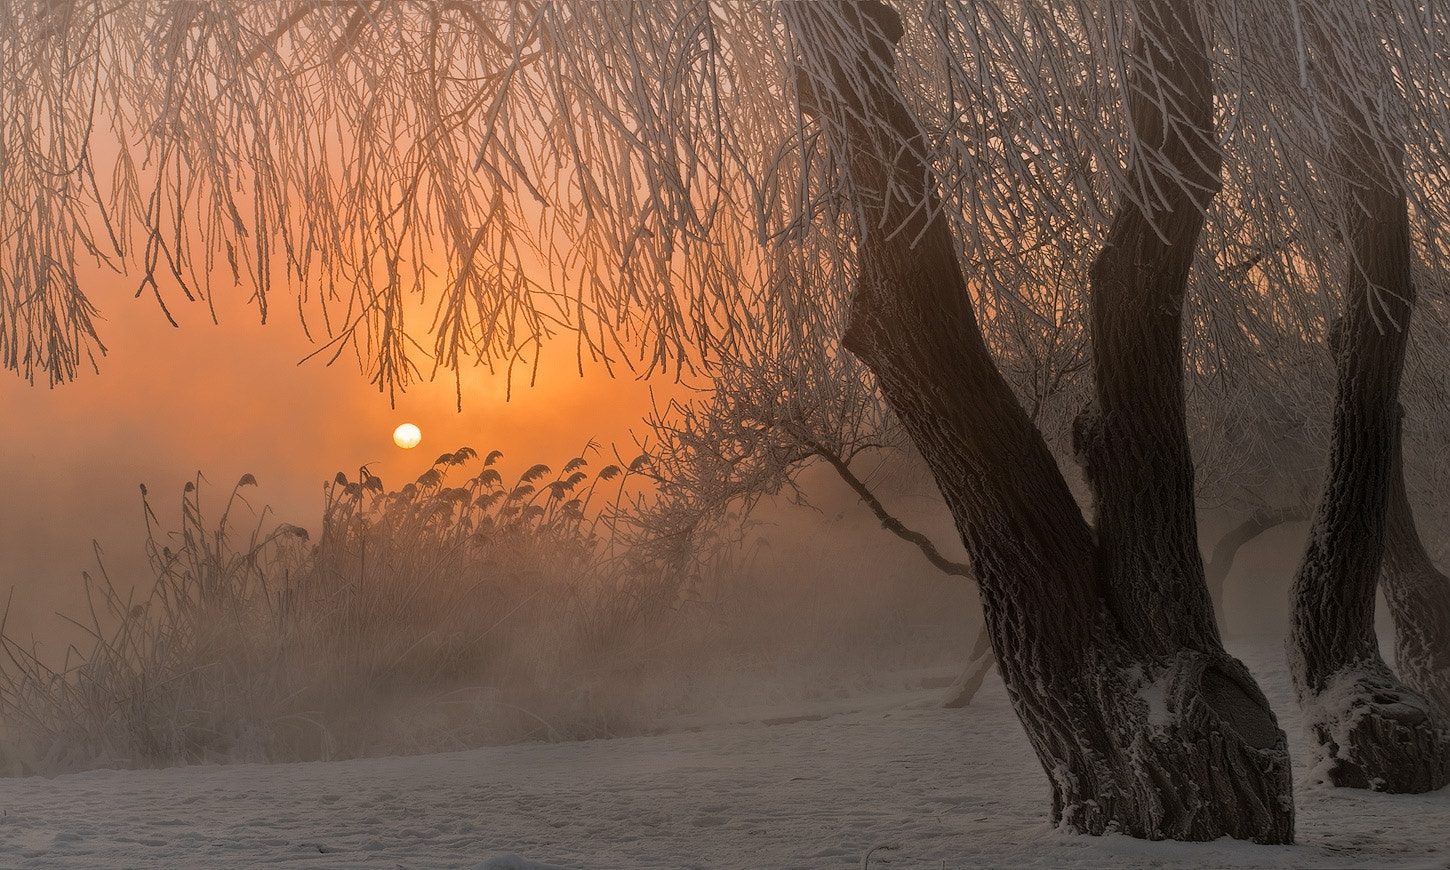 Photograph In the frosty morning by FEDOR FEDOR on 500px